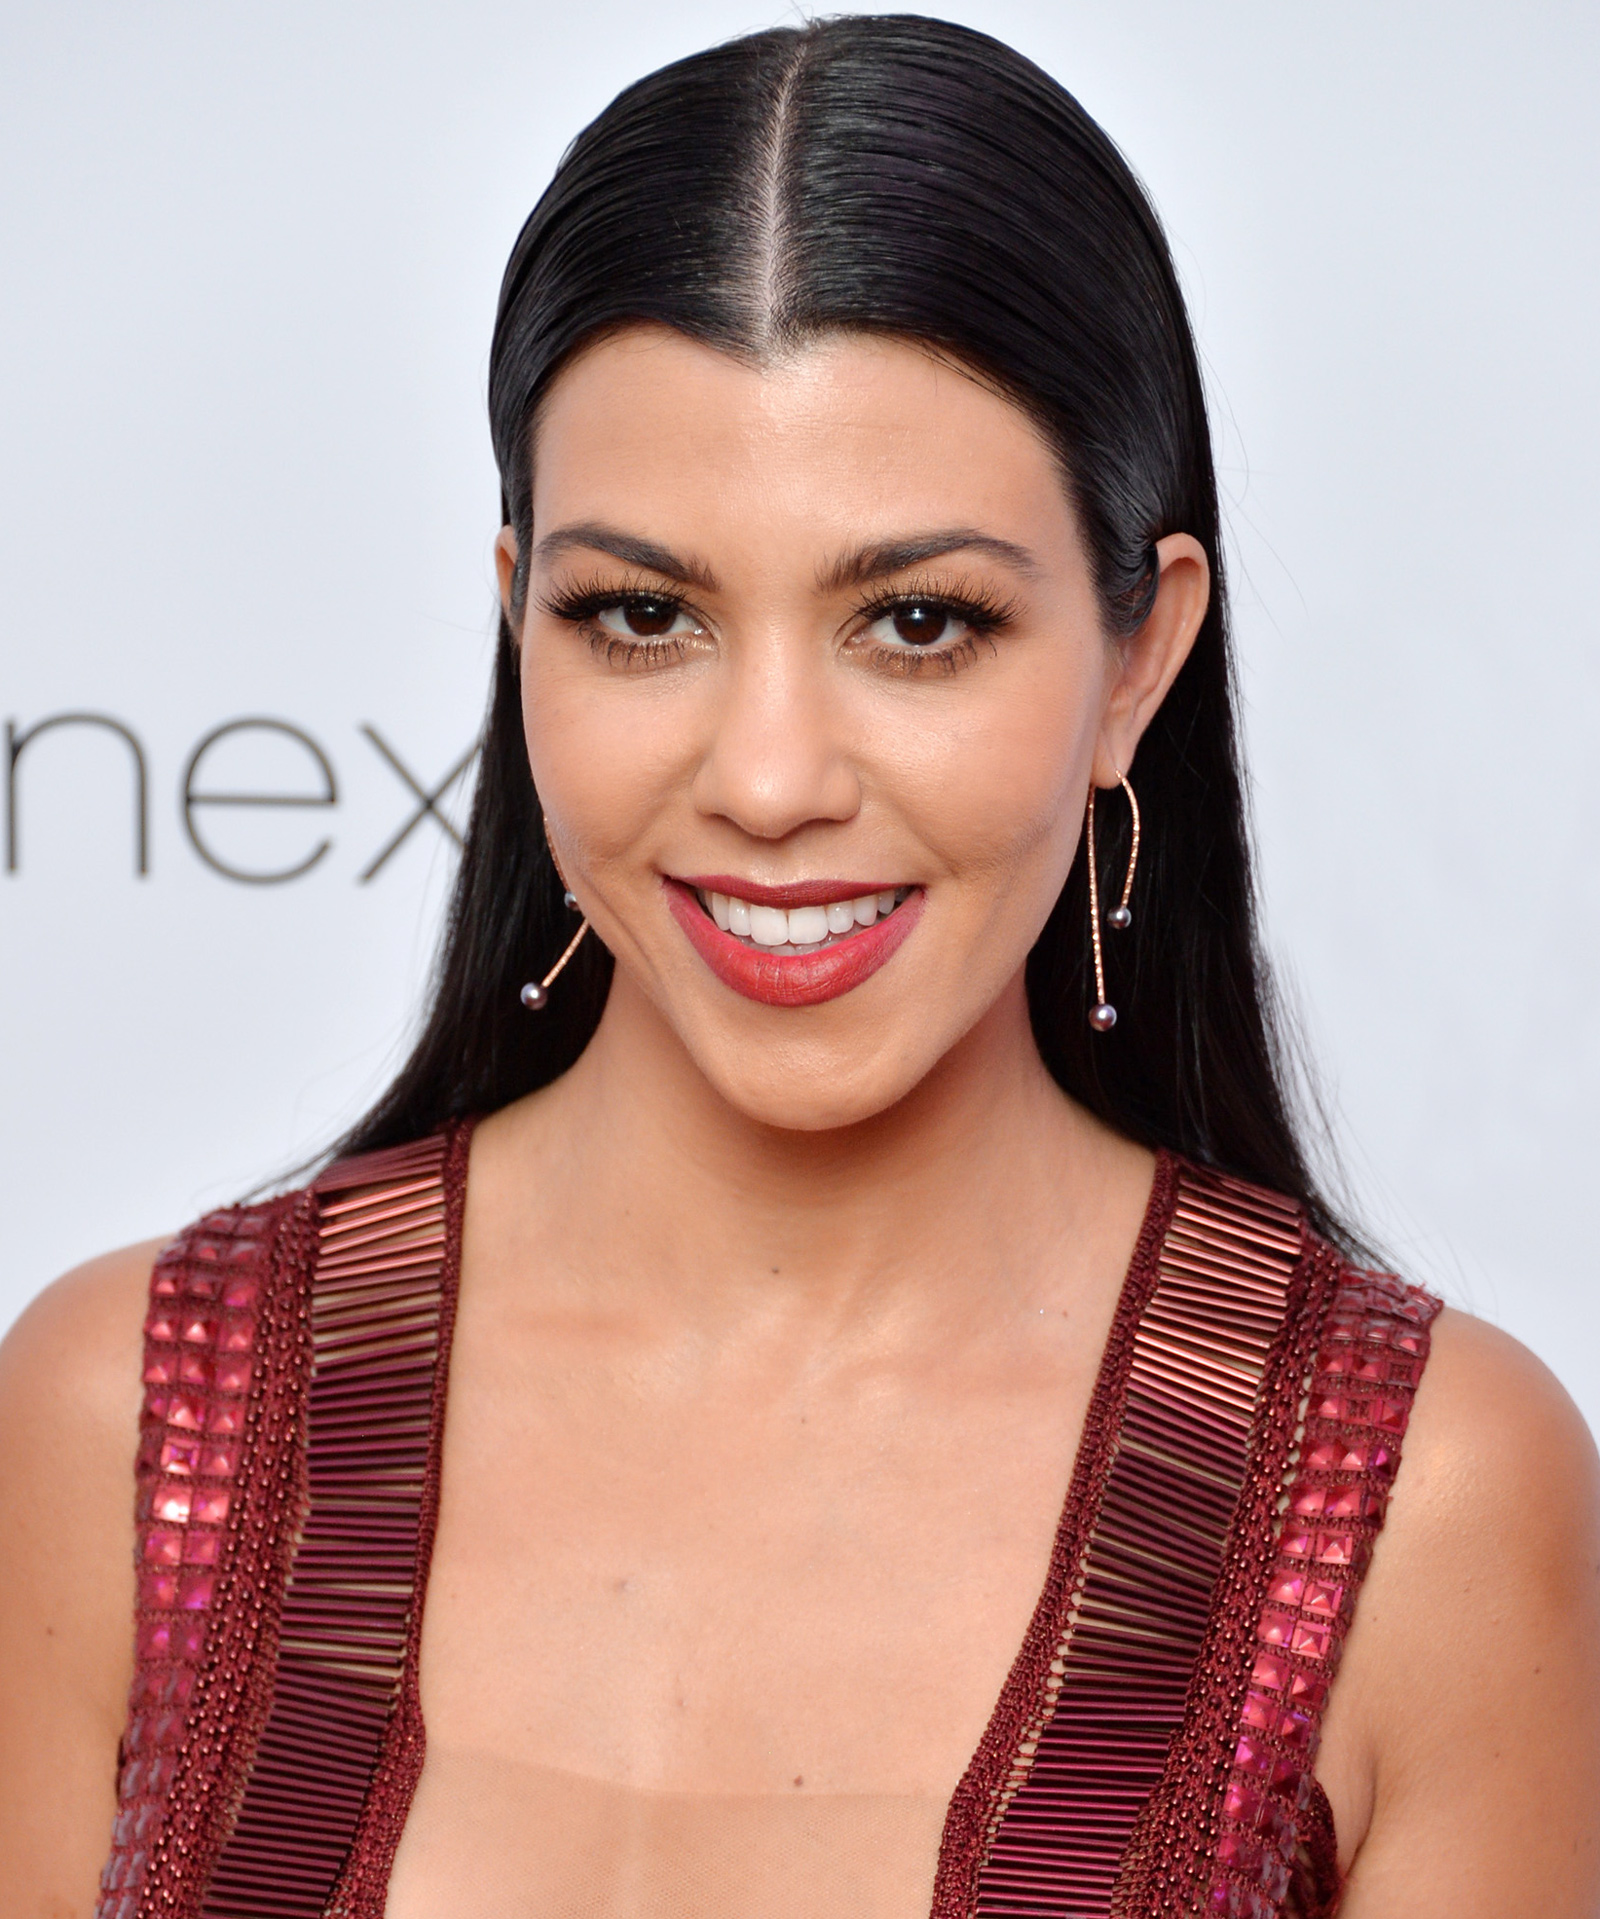 Kourtney Kardashian Is One Hot Mom in a Sheer One-Piece Swimsuit in Italy